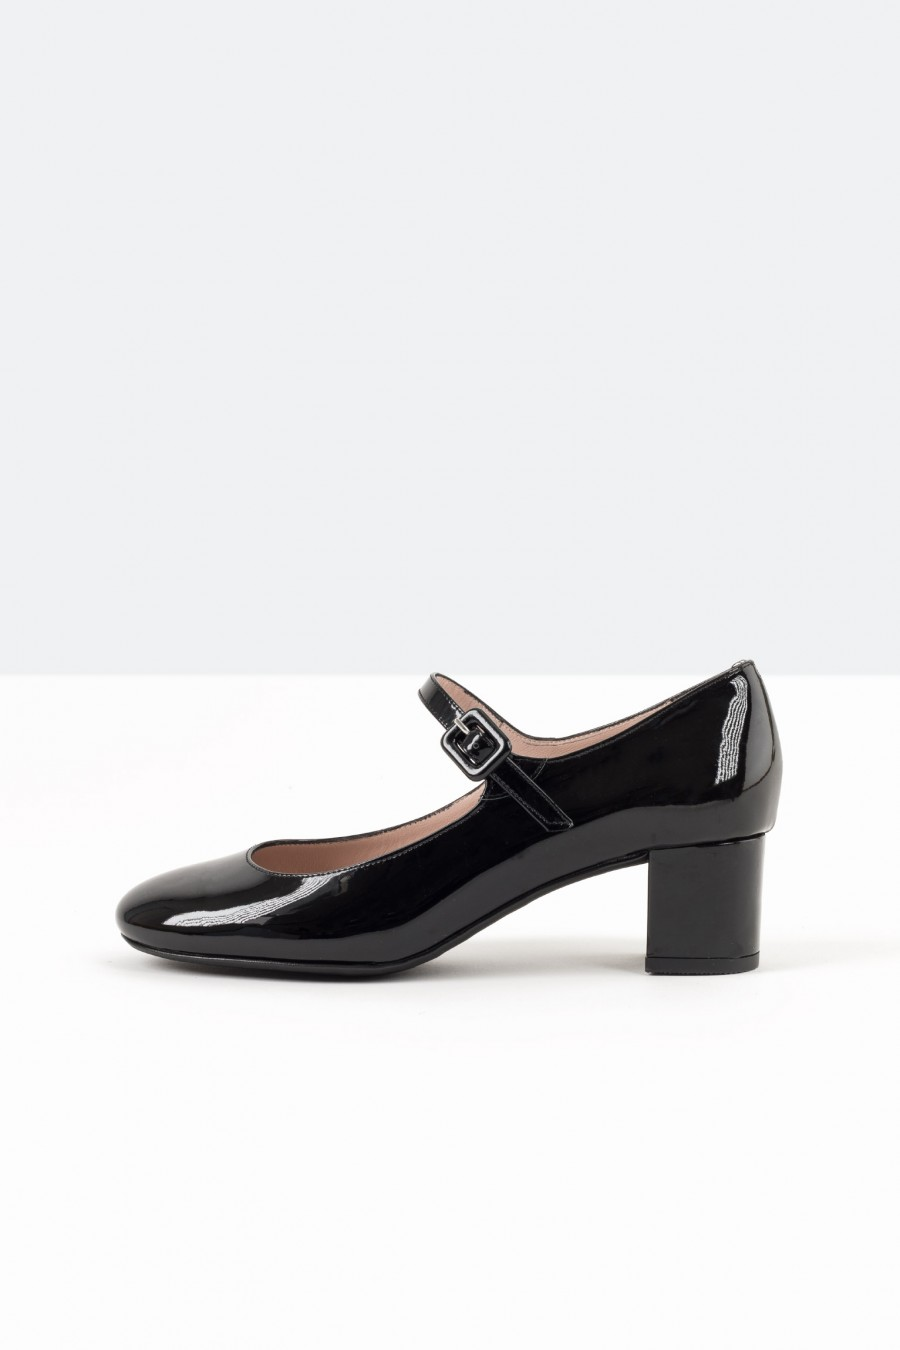 Black patent Mary Jane with straps